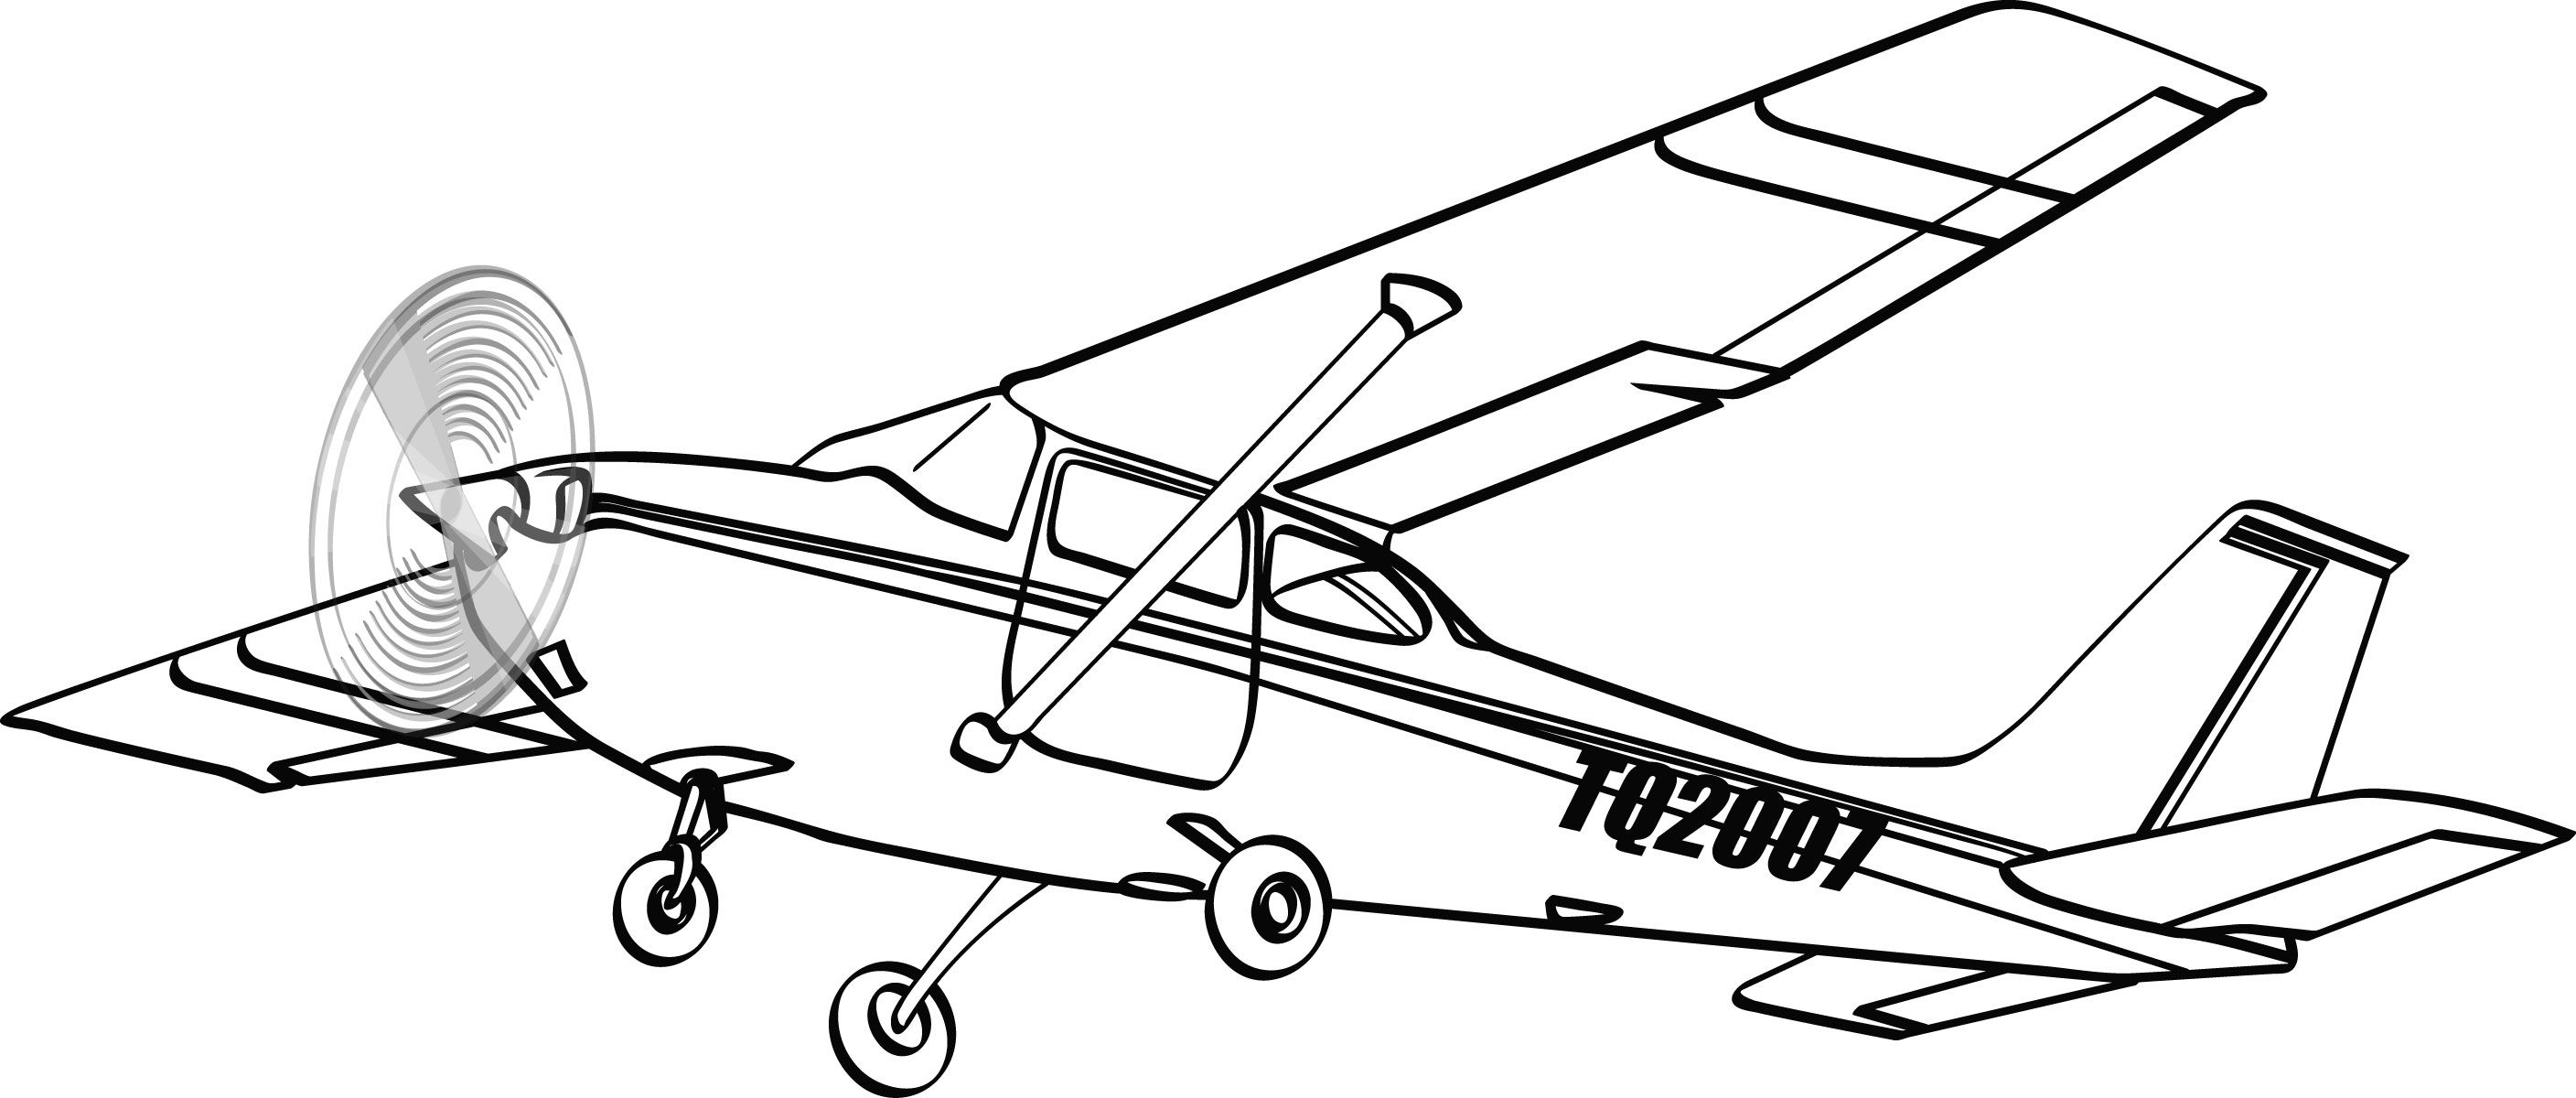 Image result for cessna 152 silhouette clipart in 2019.